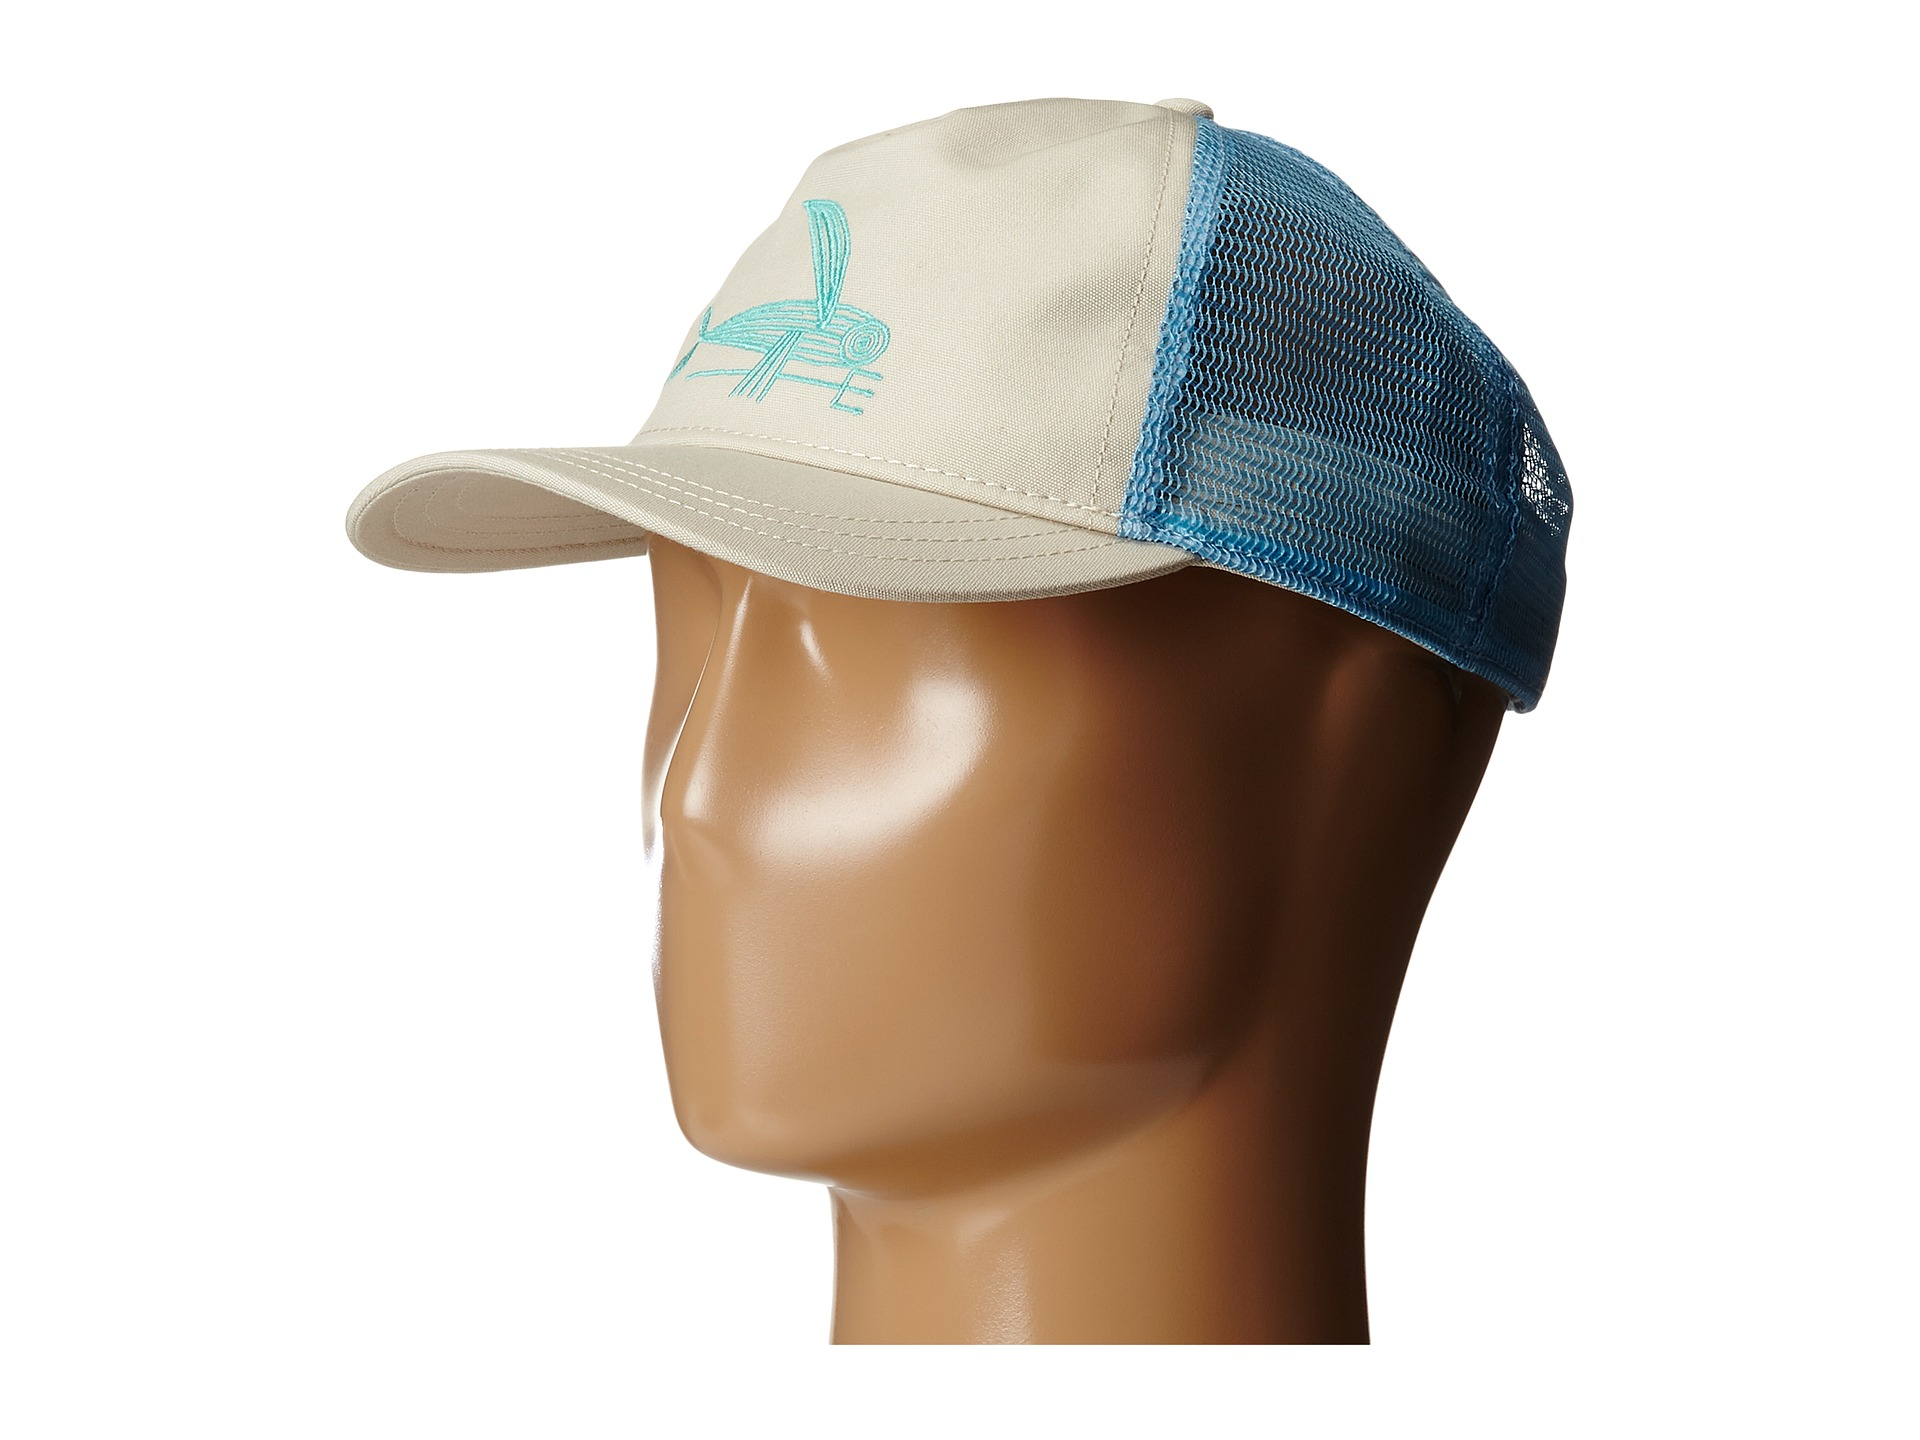 05f06cf5 Patagonia Deconstructed Flying Fish Layback Trucker Hat in Blue - Lyst